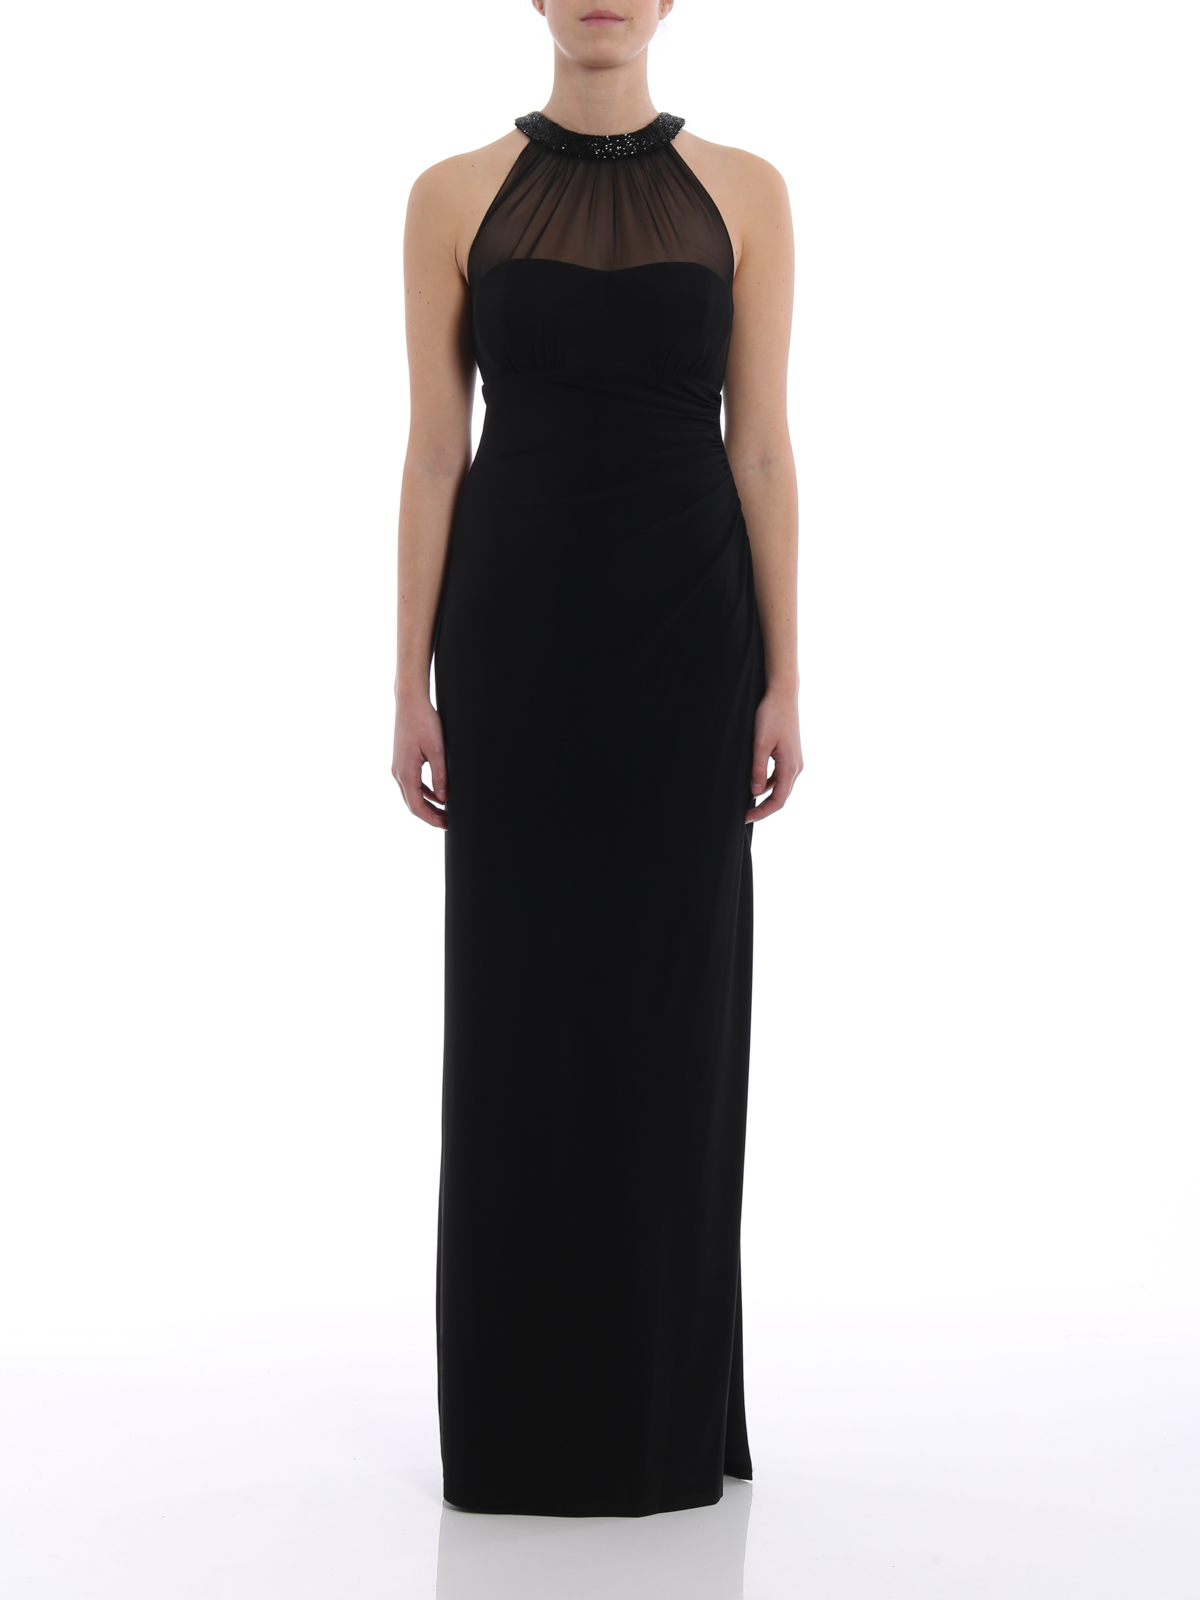 Ikrix Lauren Ralph Evening Dresses Azusa Jersey Dress